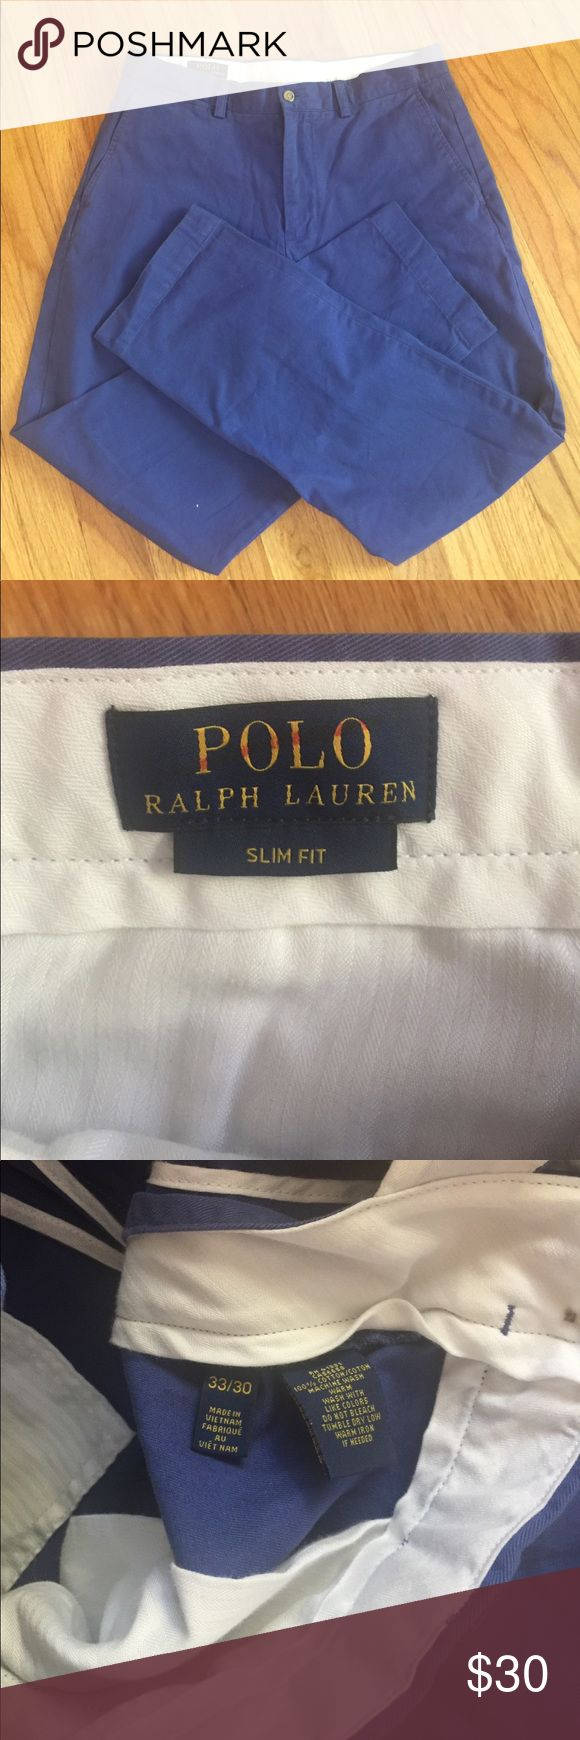 Men's 33 x 30 POLI Ralph Lauren Slim Fit PANTS These are great-looking pair of pants by Ralph Lauren for polo. They are a size 33 x 30. They are blue in color they are 100% cotton. They are slim fit with two pockets in the front and two pockets in the rear. They are in excellent condition. Polo by Ralph Lauren Pants Chinos & Khakis